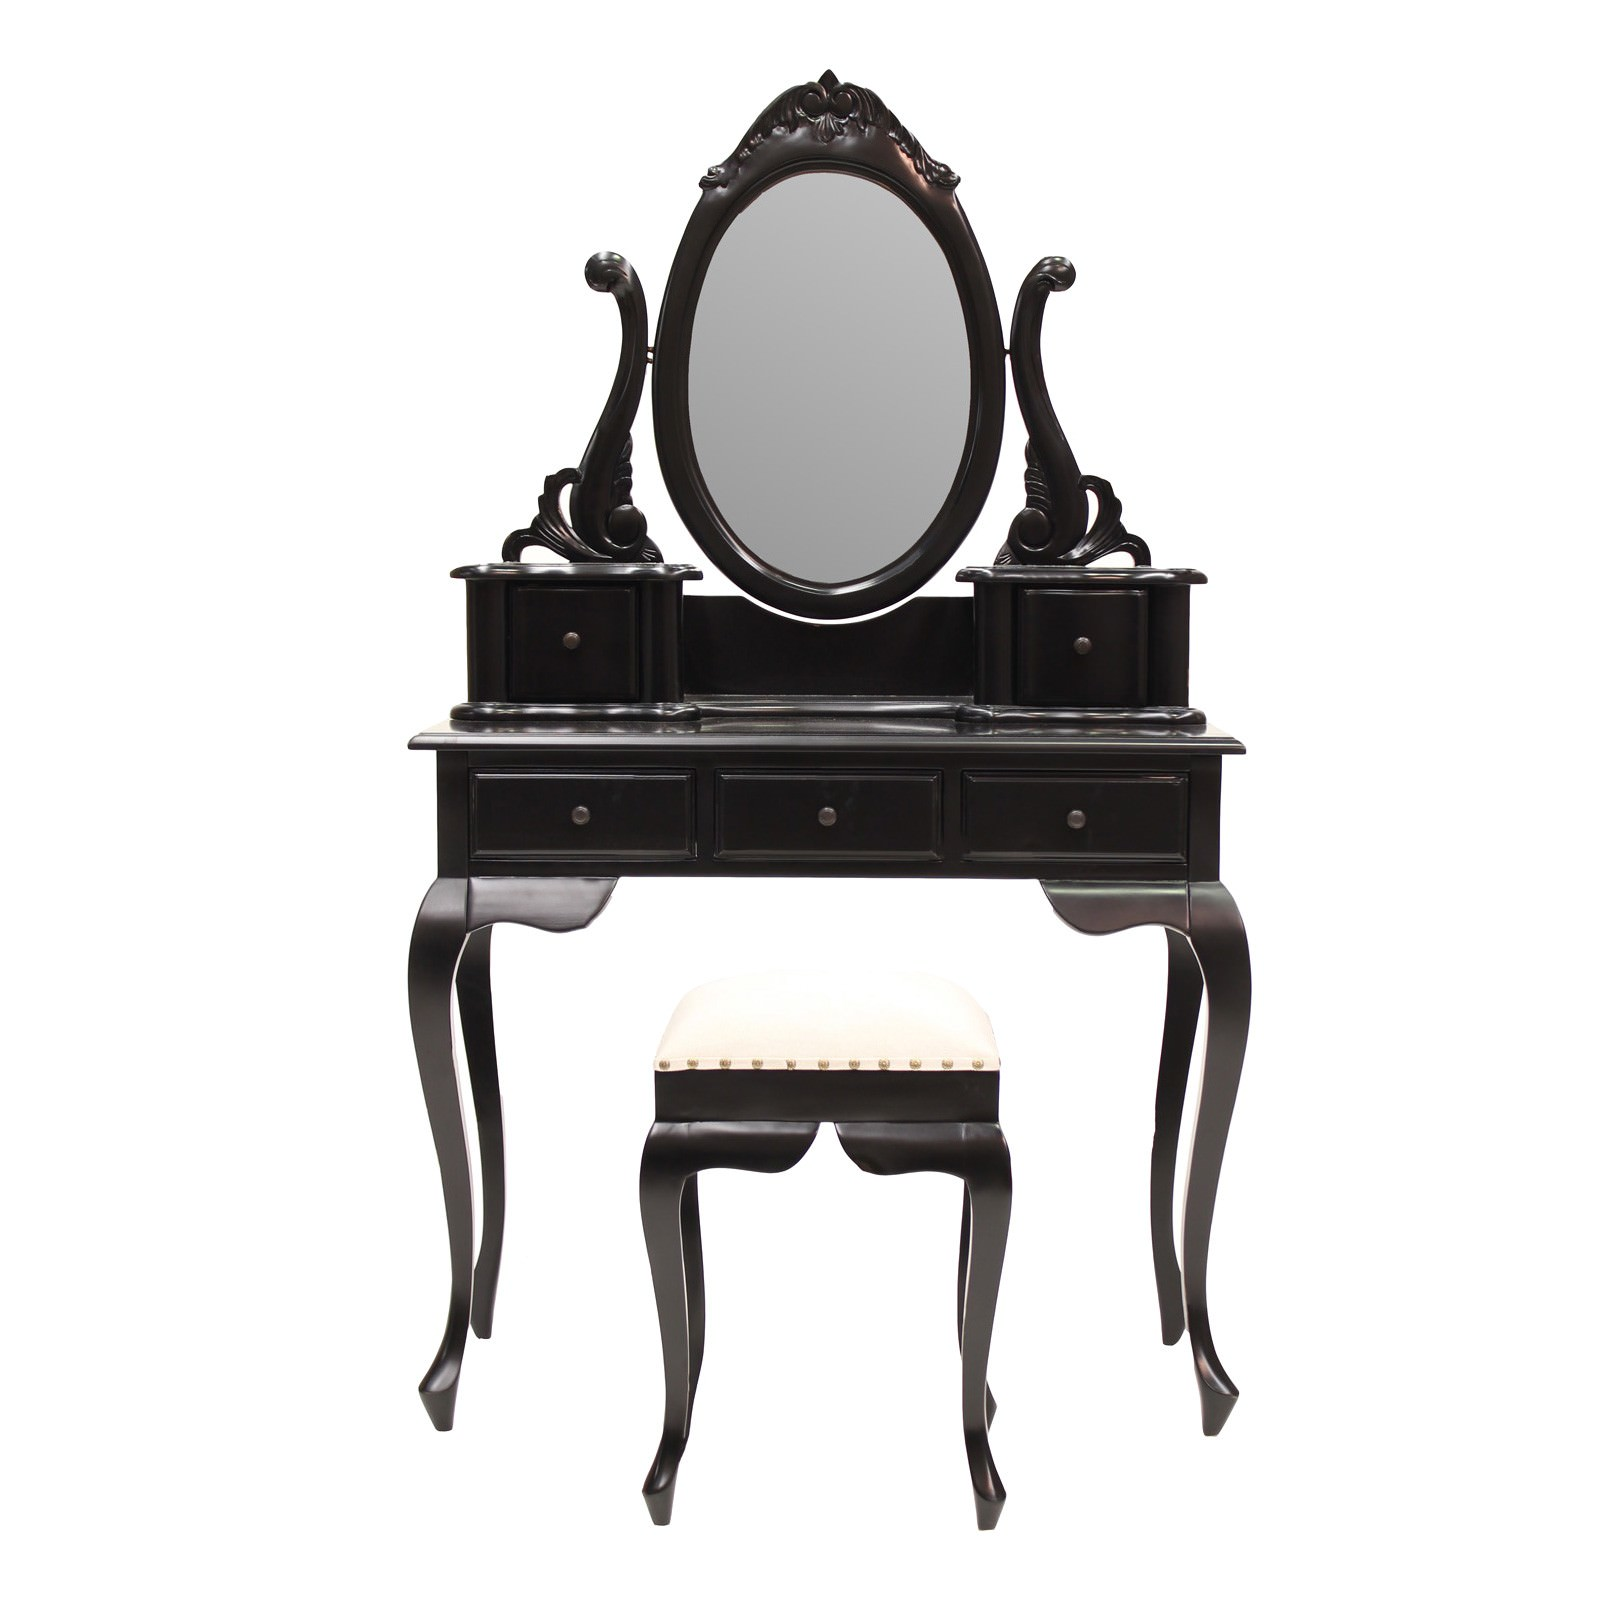 Champier Hand Crafted Mahogany Dressing Table with Stool, Black